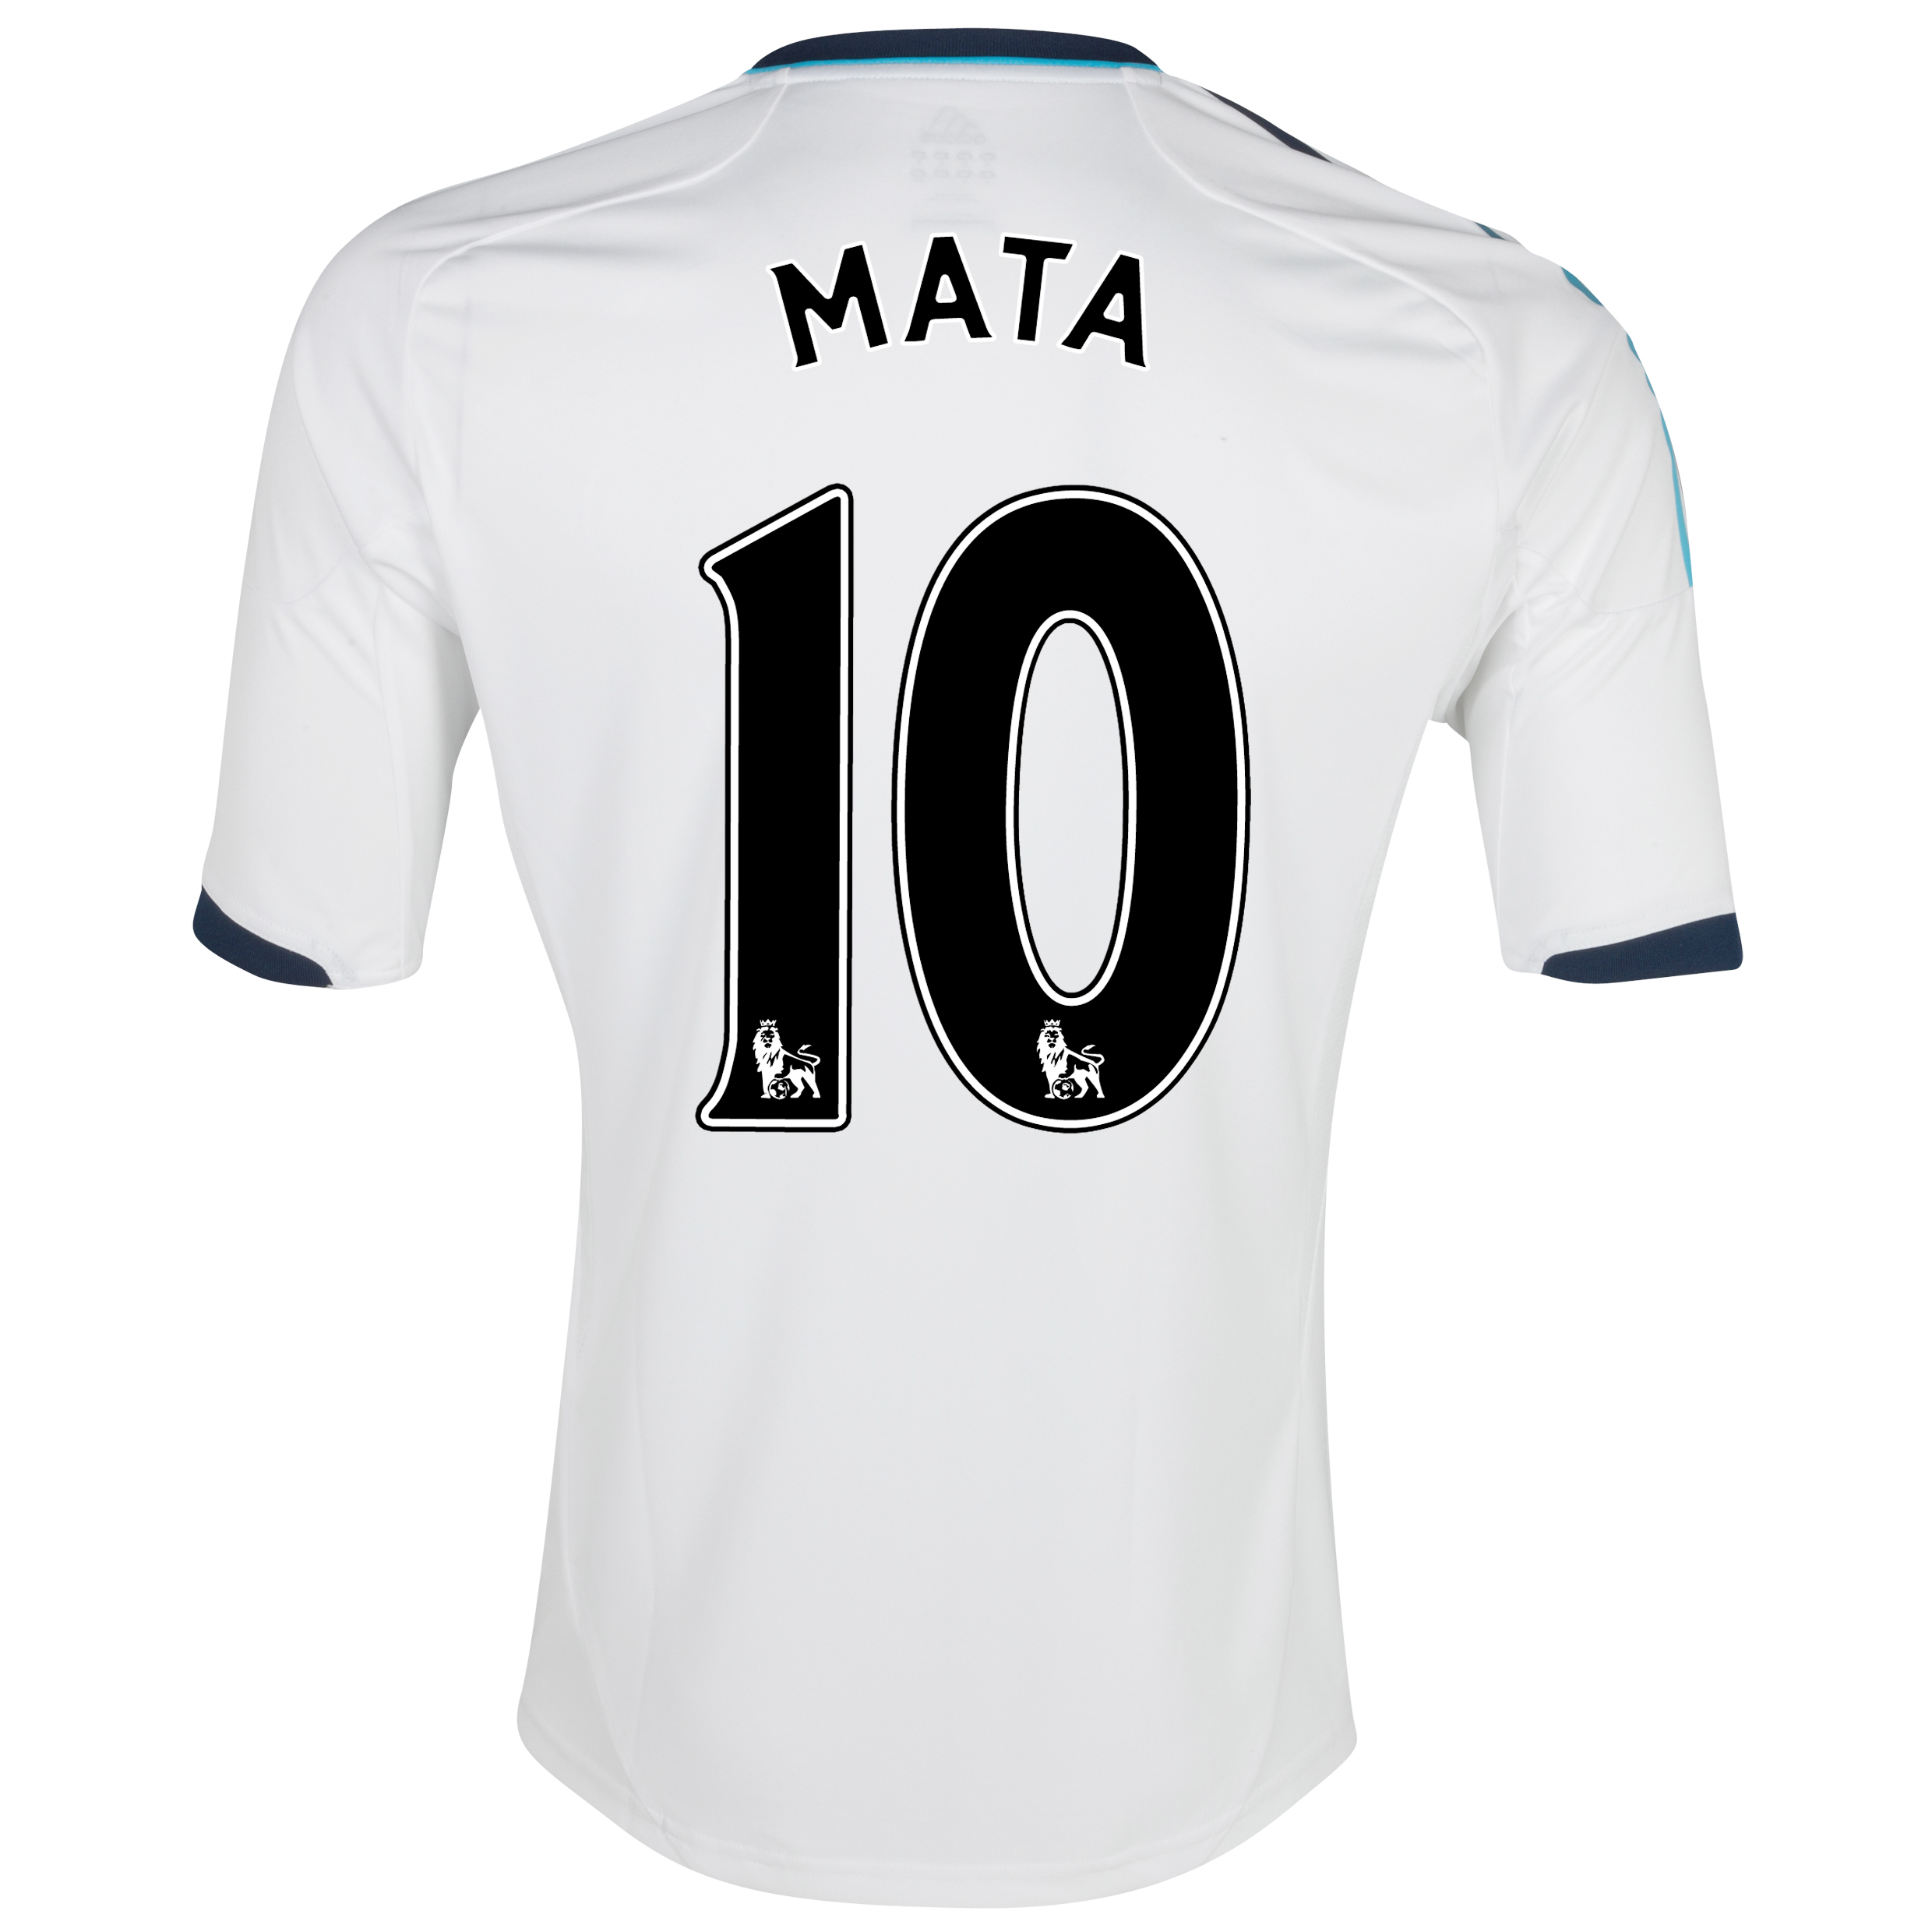 Chelsea Away Shirt 2012/13 - Youths with Mata 10 printing